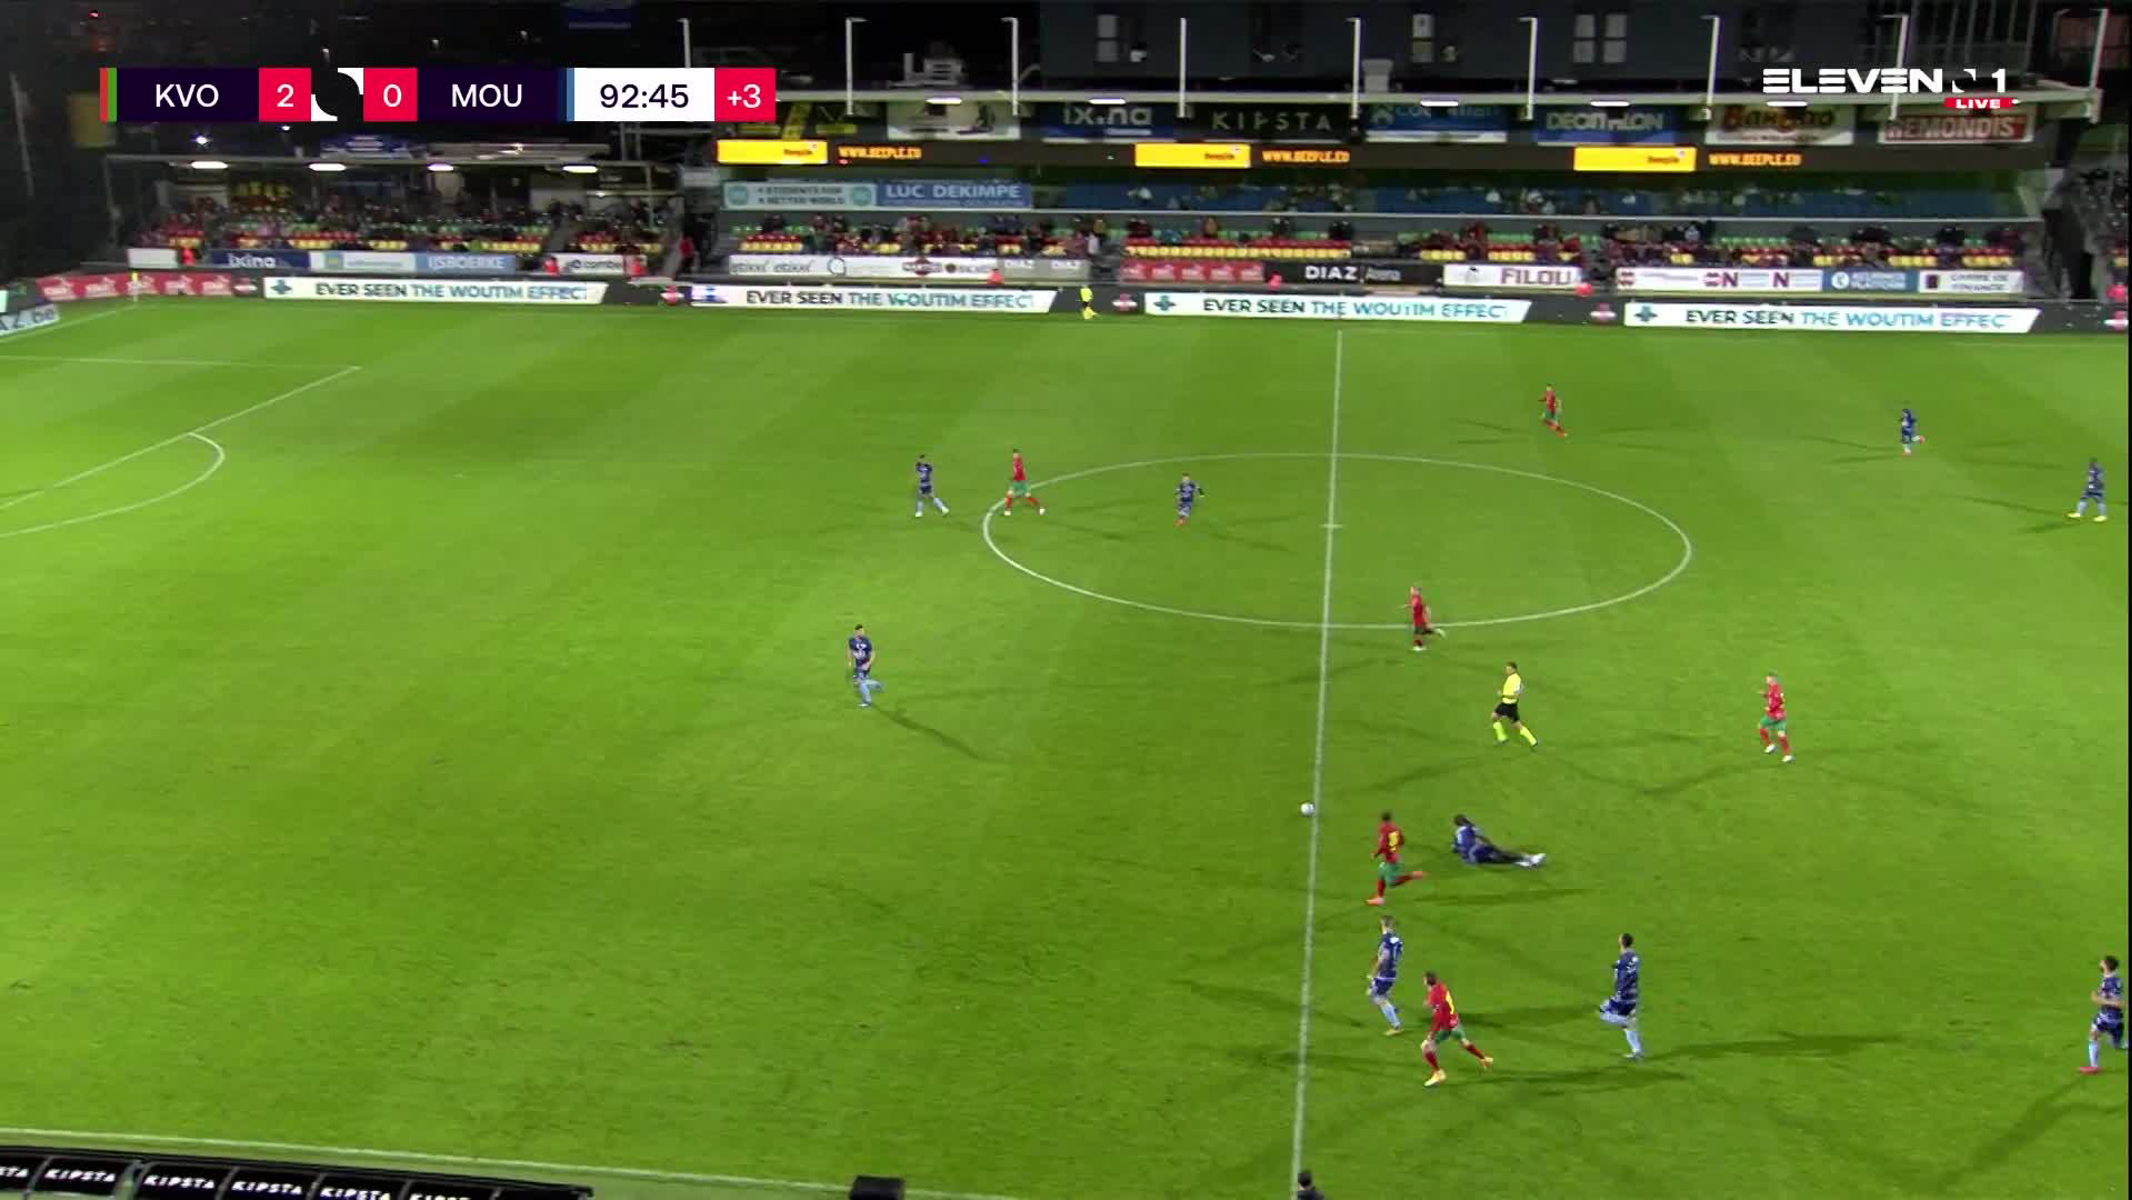 Doelpunt Cameron McGeehan (KV Oostende vs. Royal Excel Mouscron)